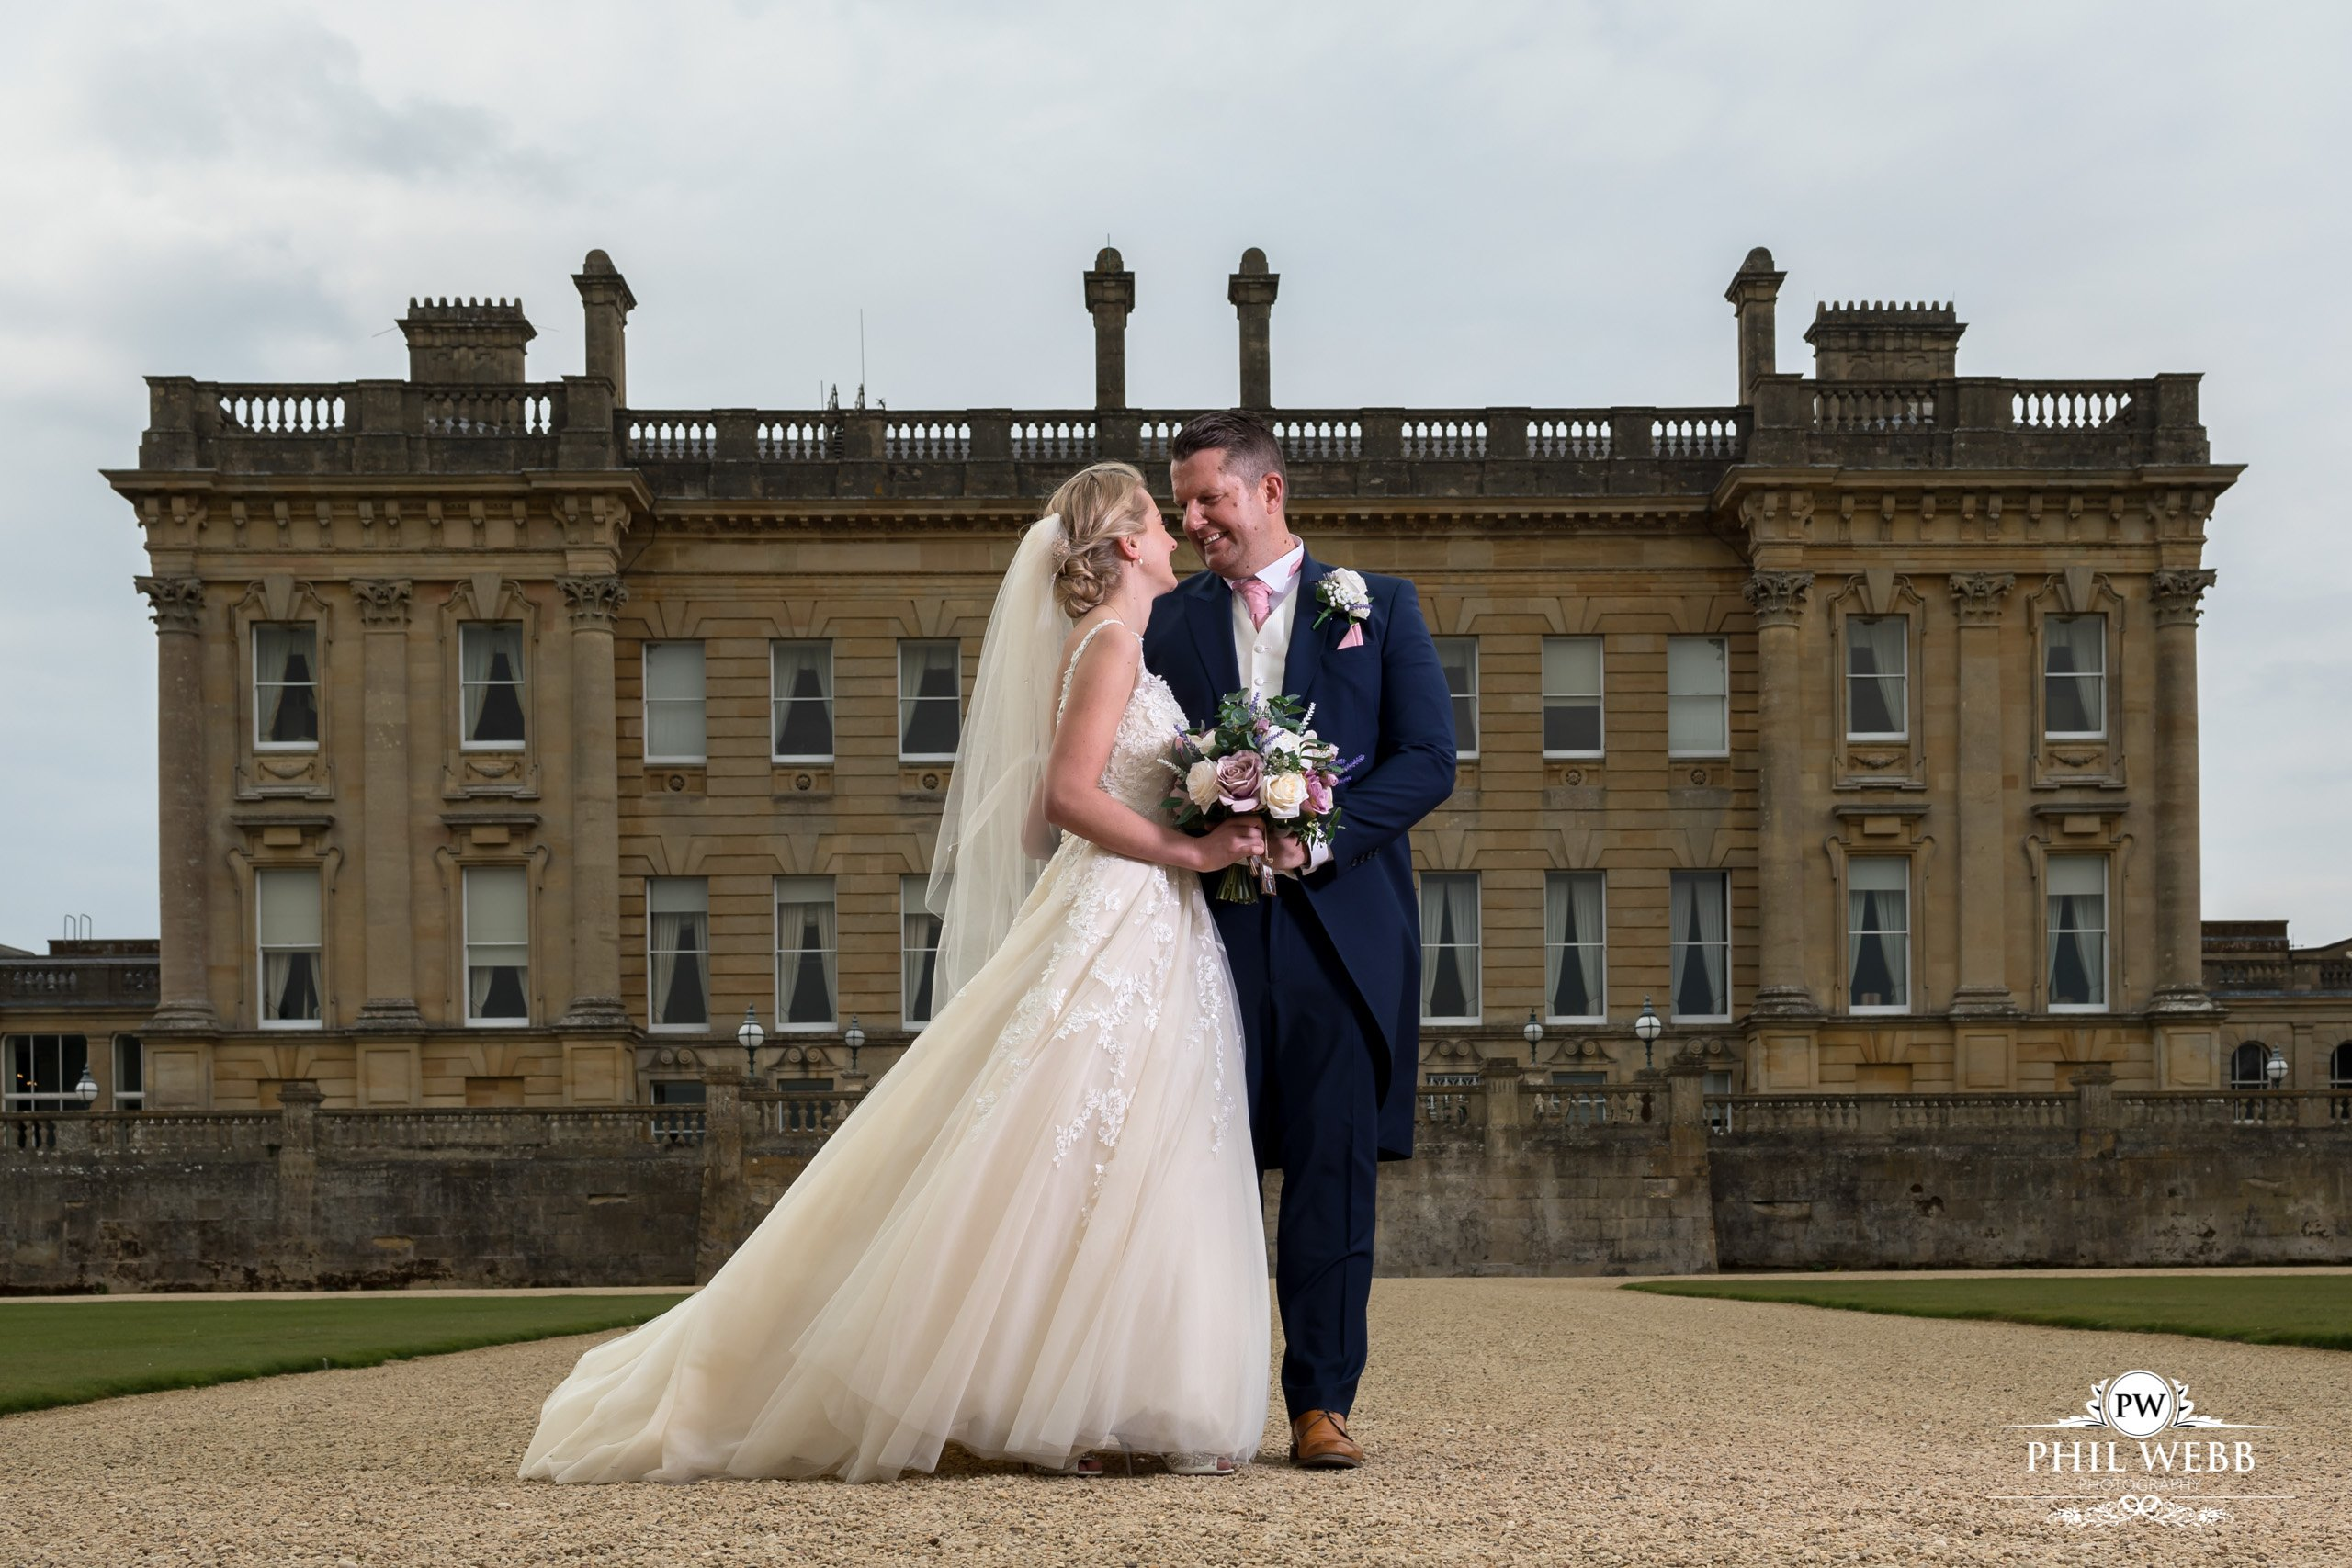 Annabel & Steve's Wedding - Heythrop Park Resort